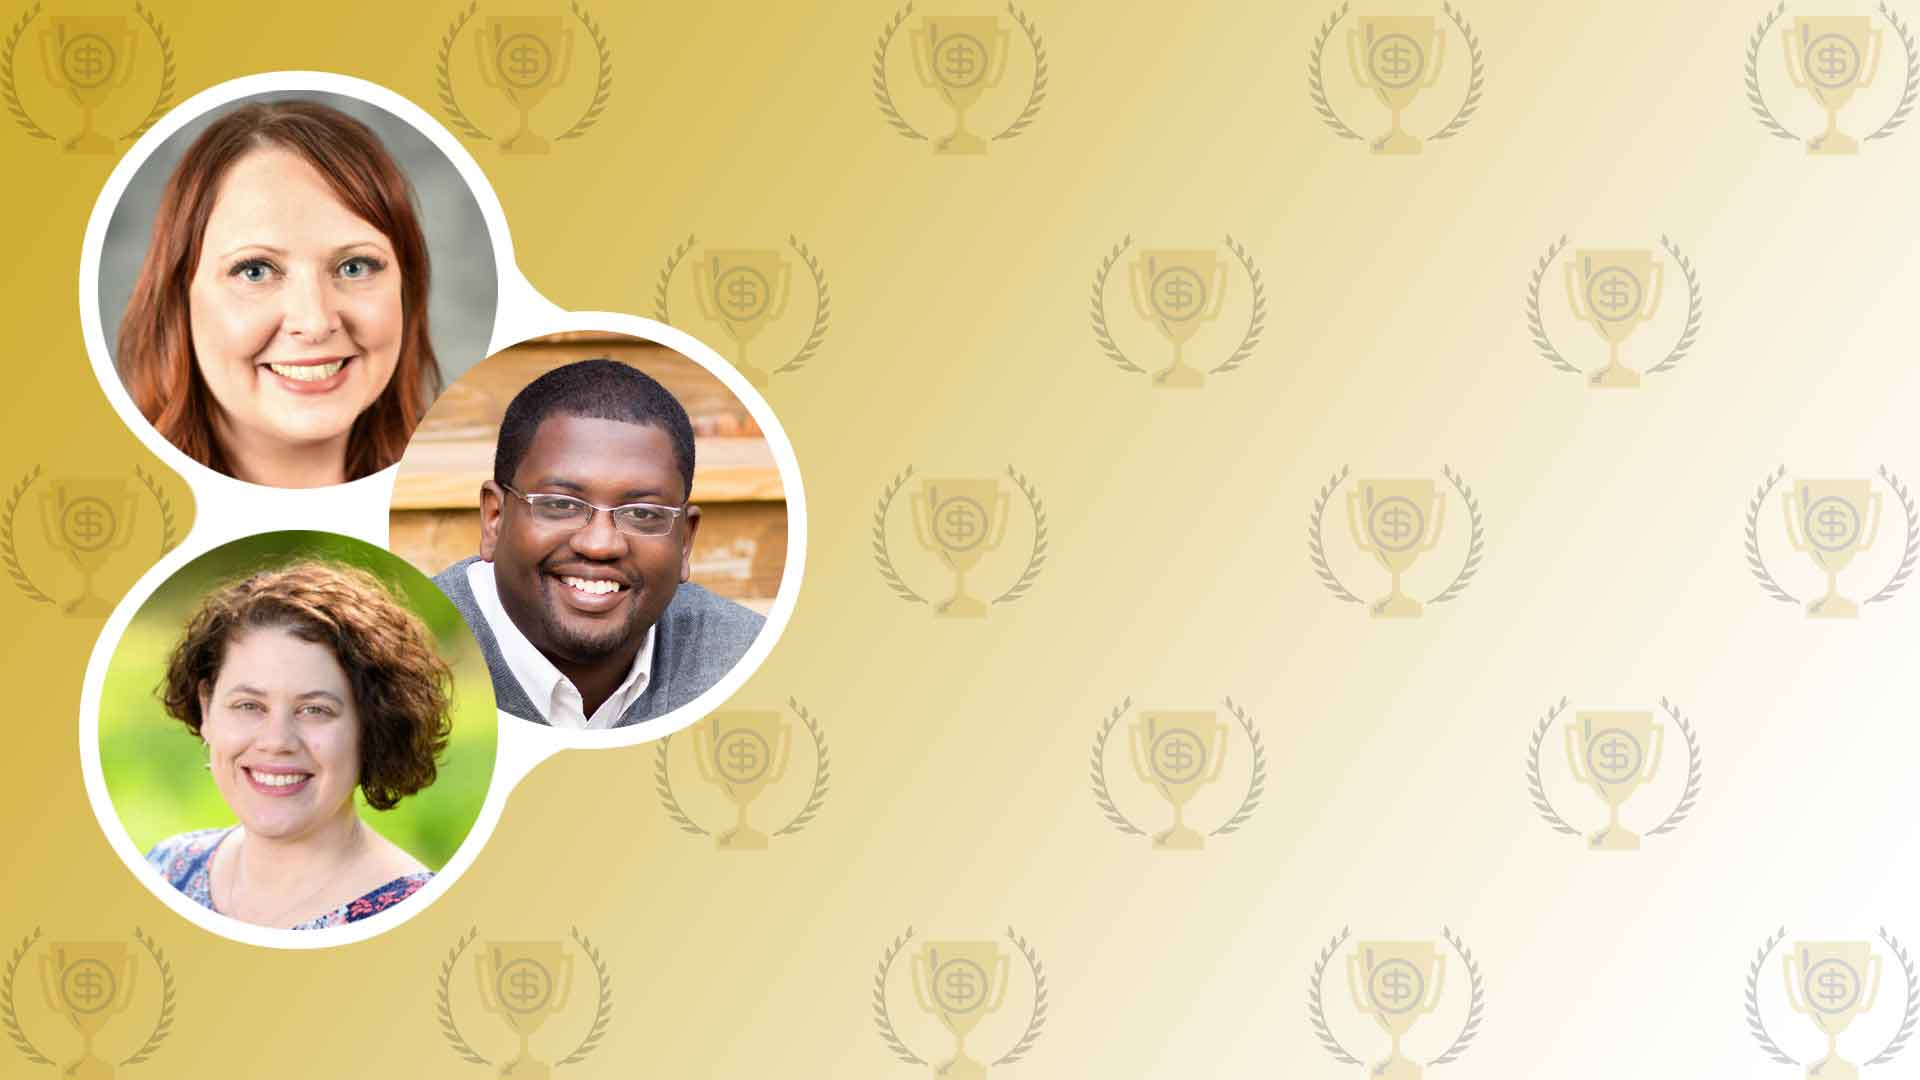 Plutus Awards Podcast Childcare and Education Crisis